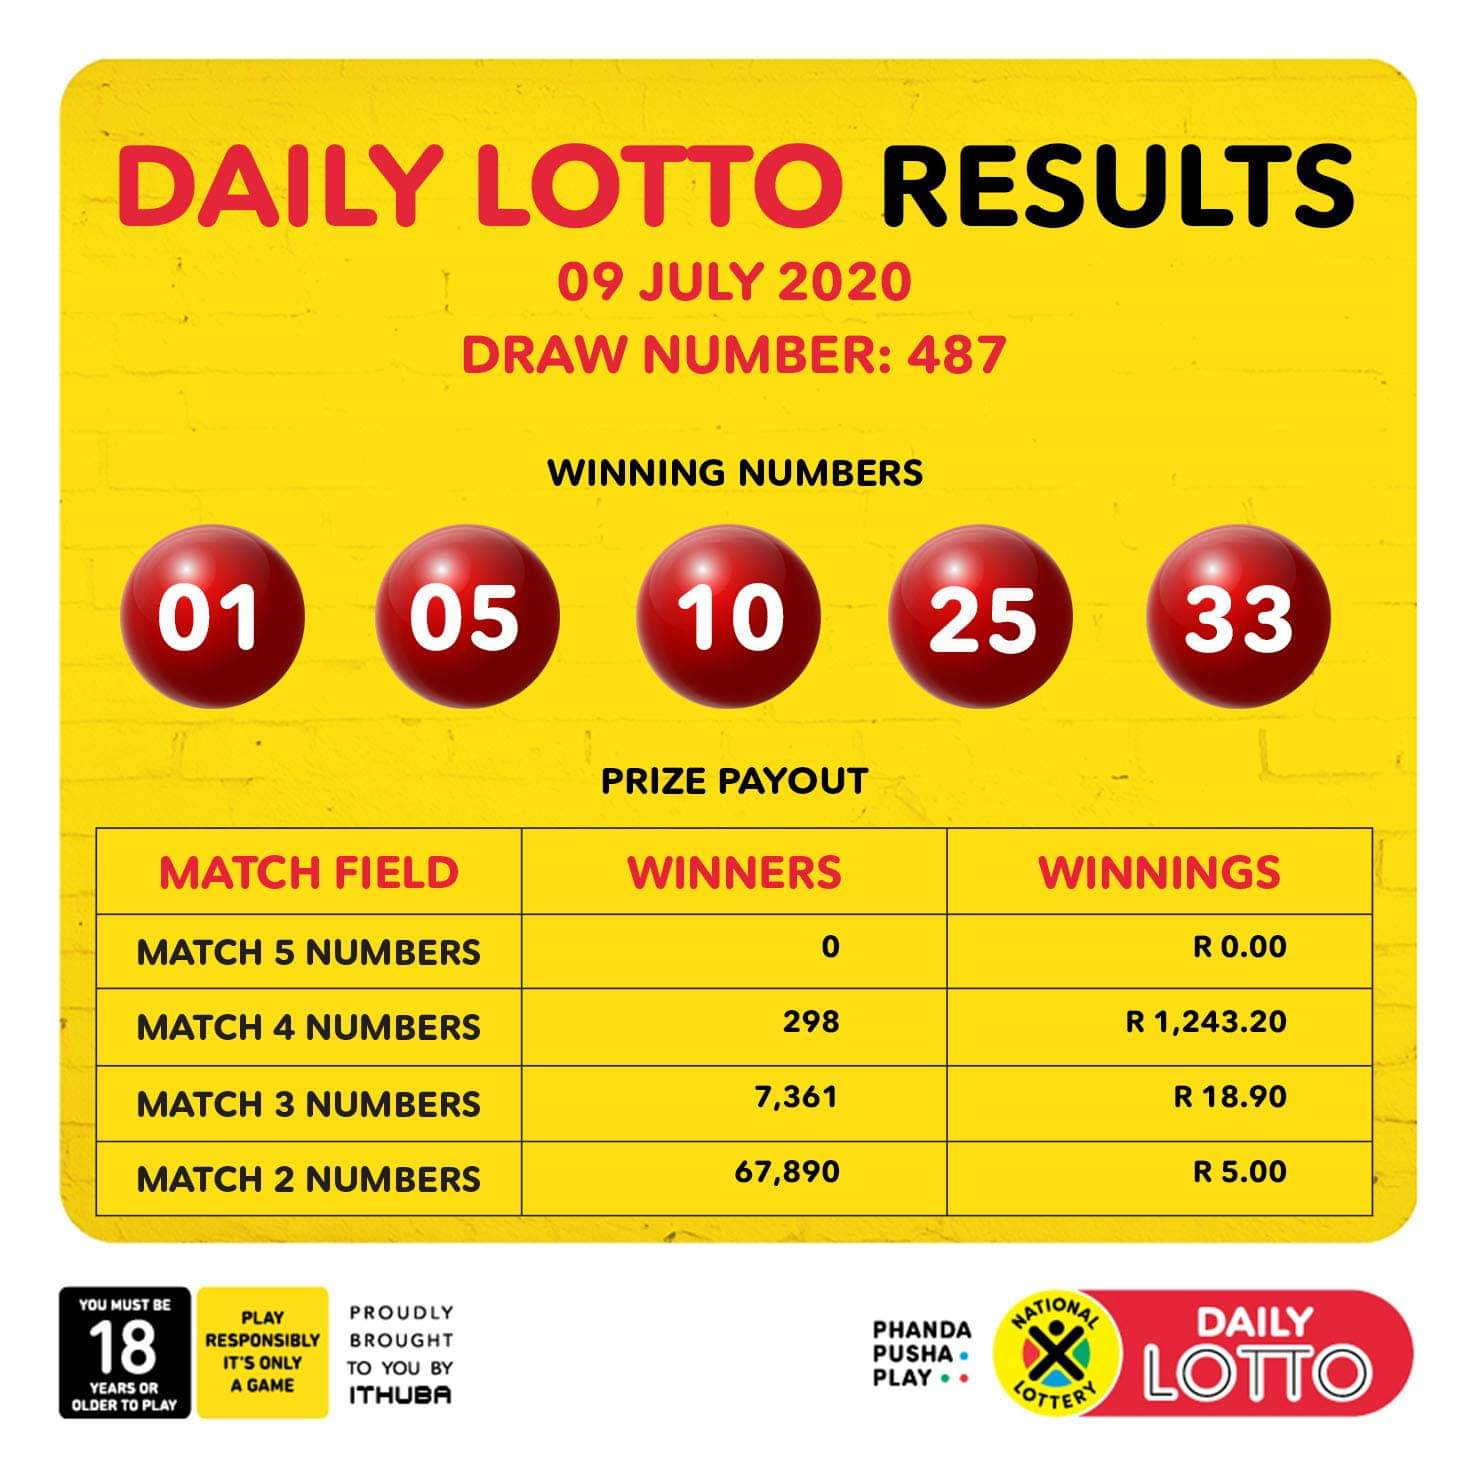 Daily Lotto Results For Thursday 9 July 2020